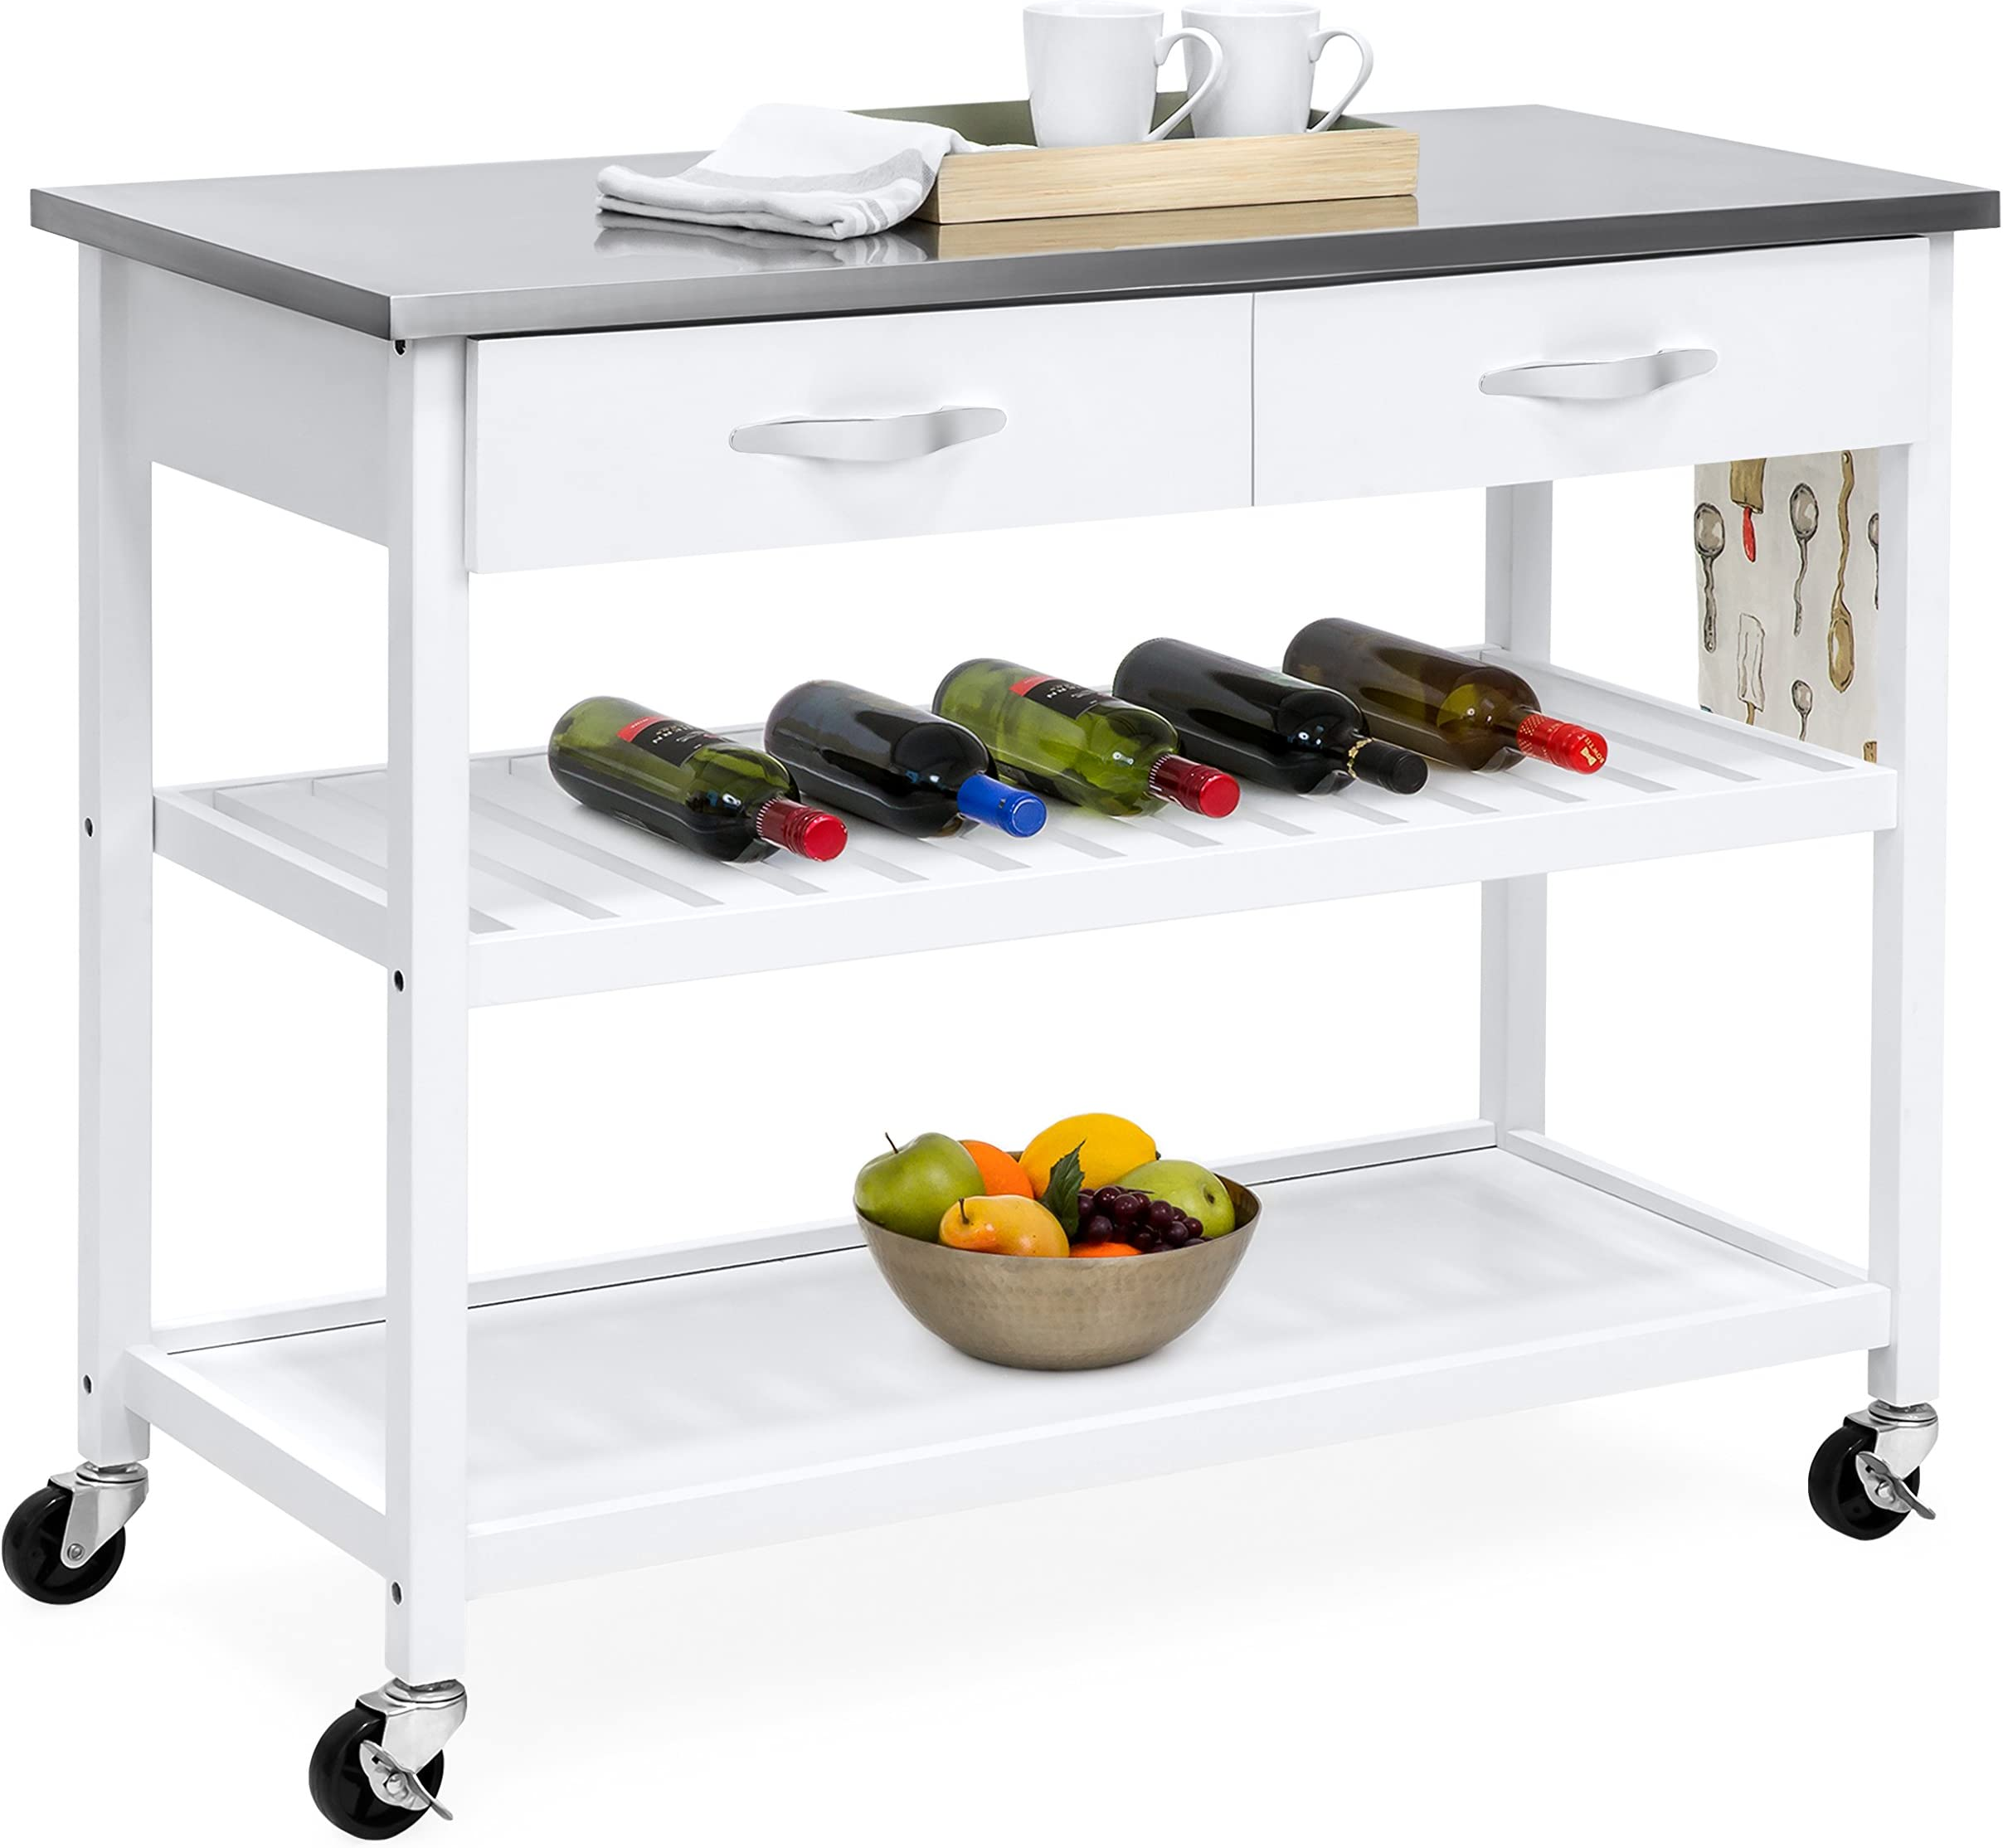 best choice products mobile kitchen island  kitchen islands  u0026 carts   amazon com  rh   amazon com